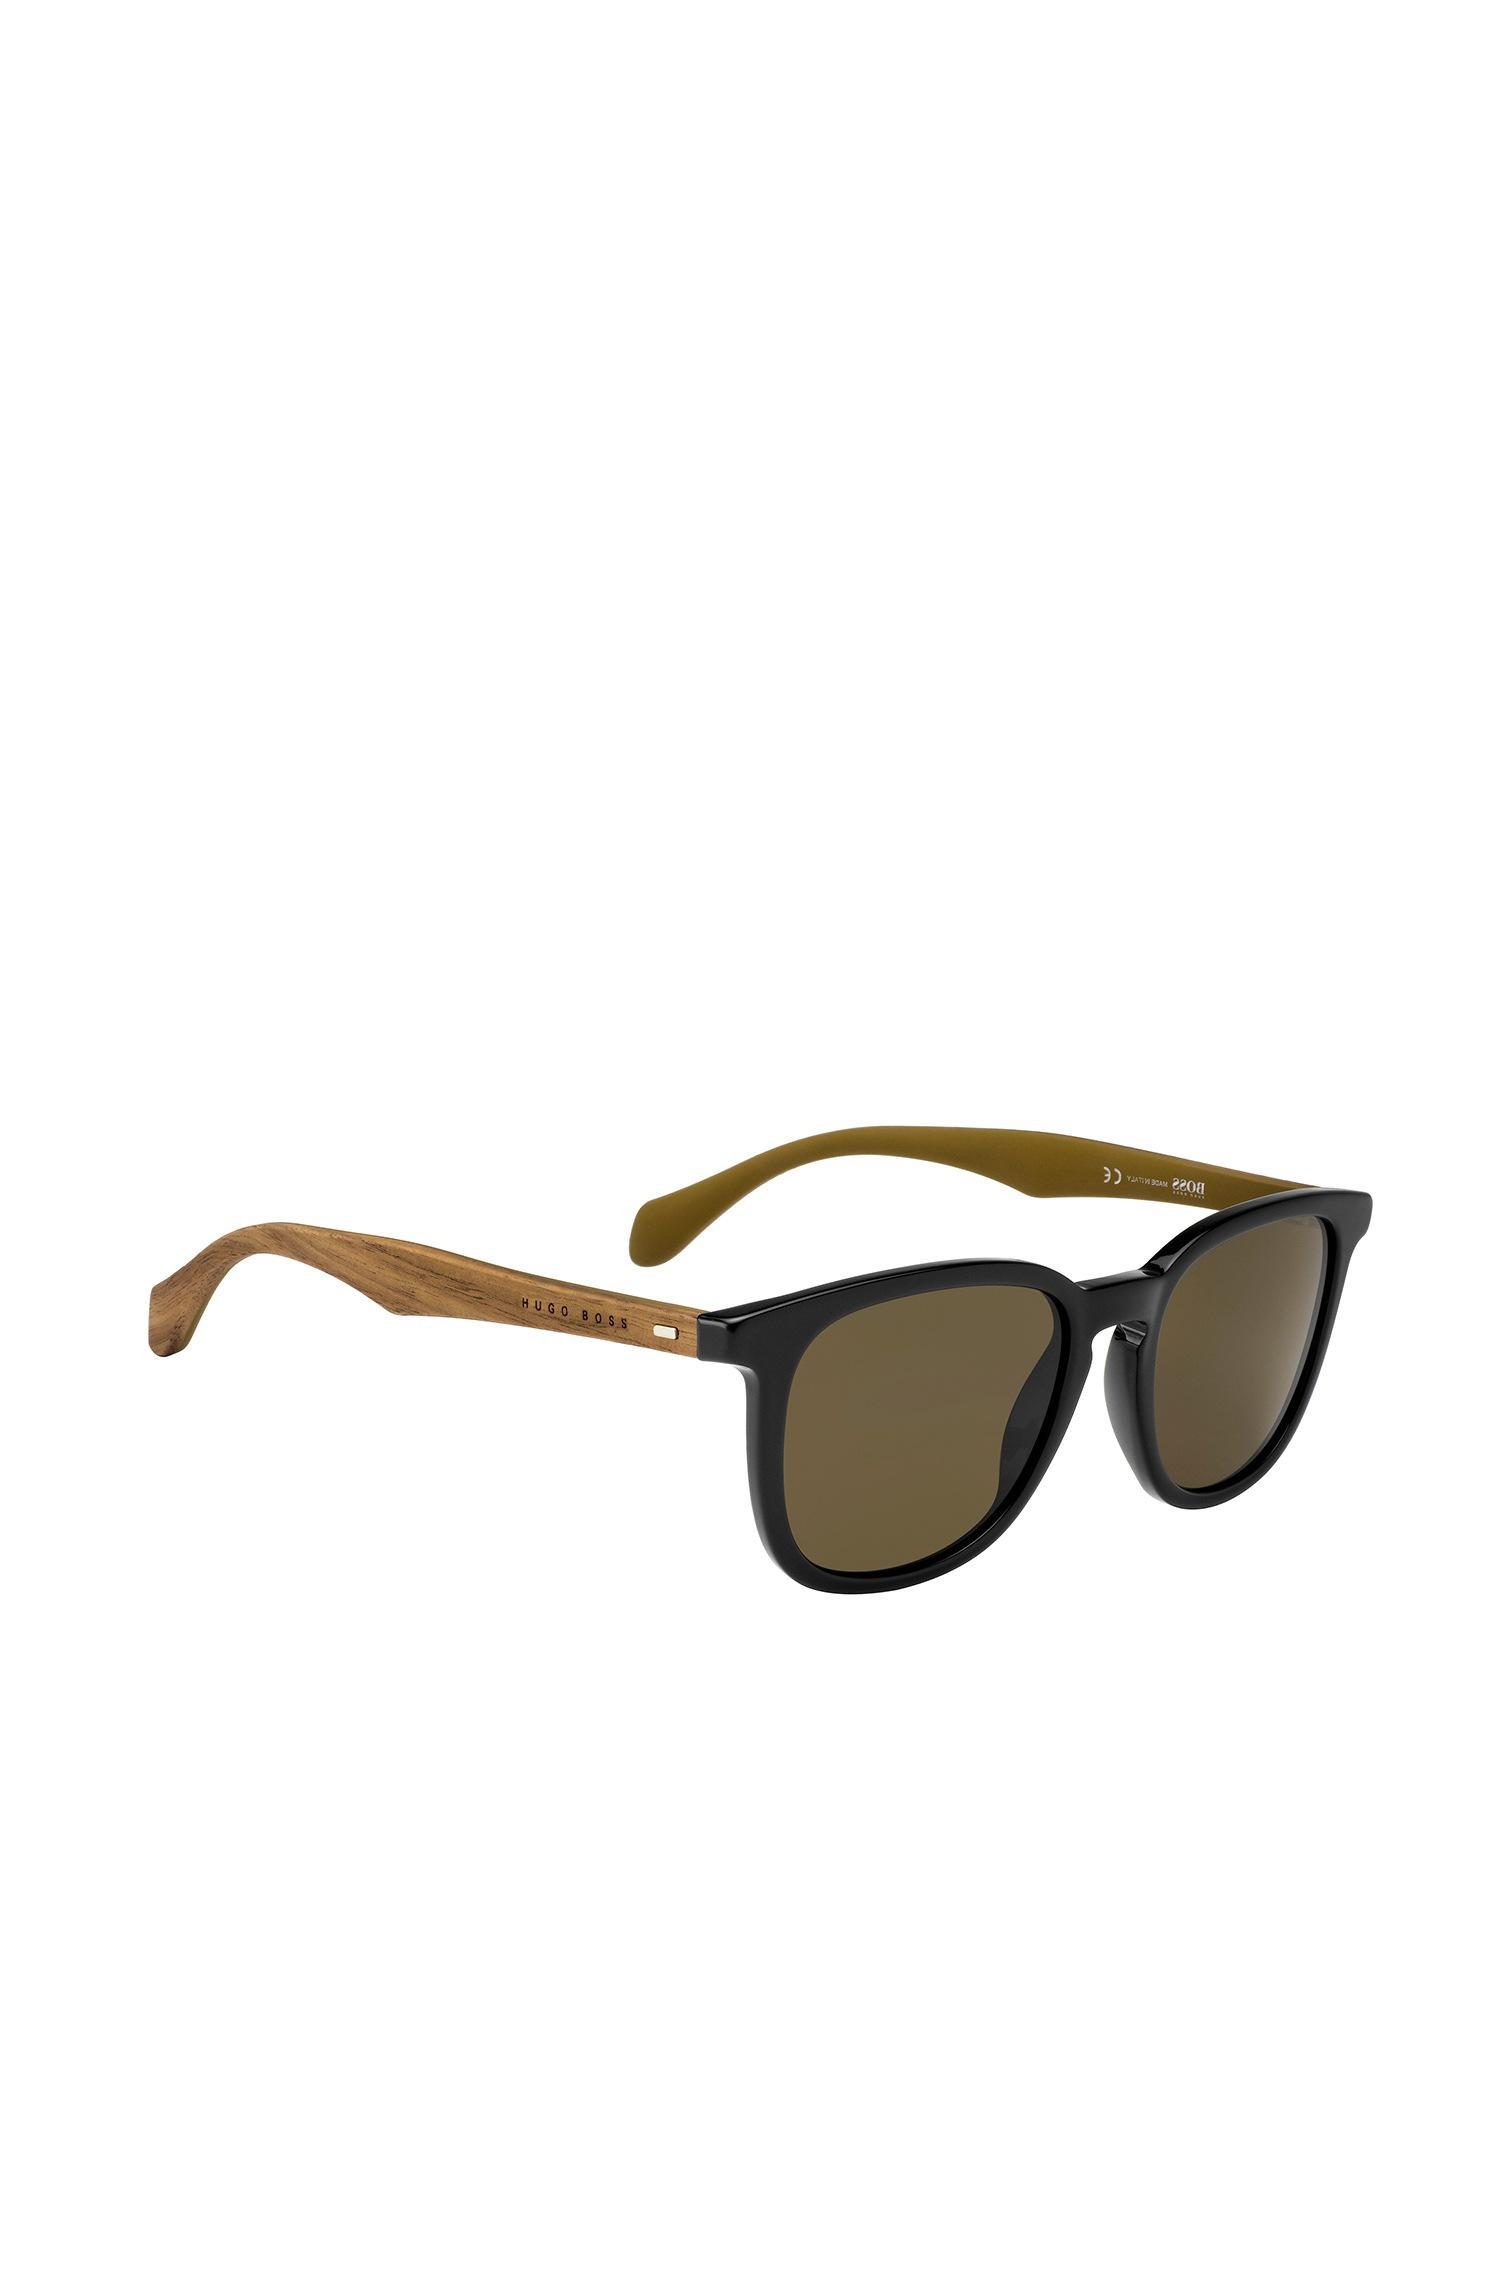 Sunglasses with fully-rimmed frames and transparent temples: BOSS 0849/S BOSS y6ZPOs5